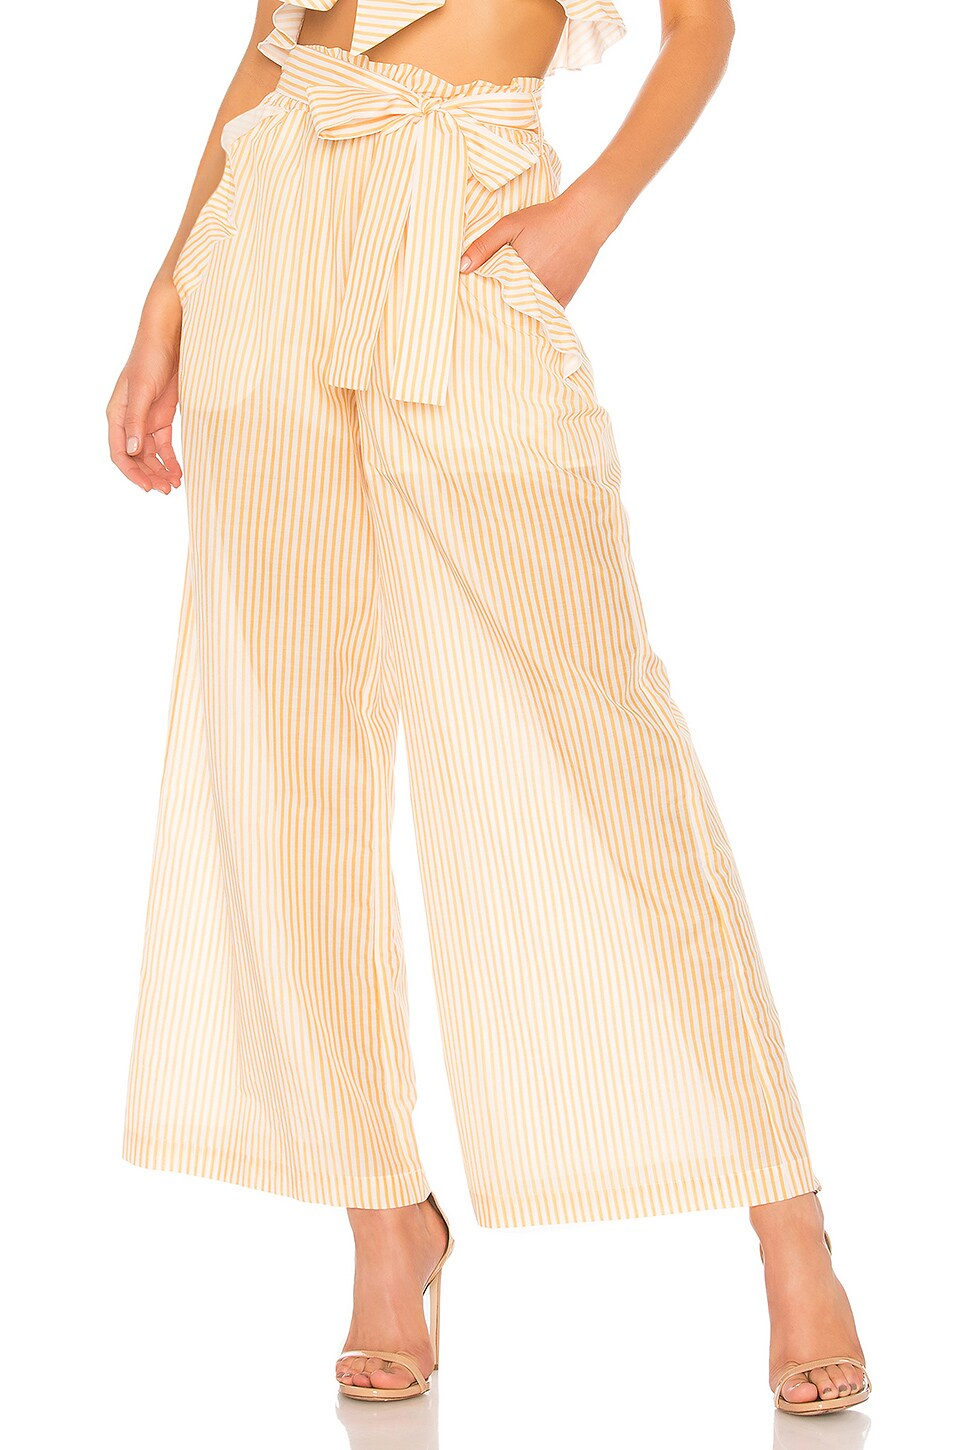 x REVOLVE Voile Frill Pant